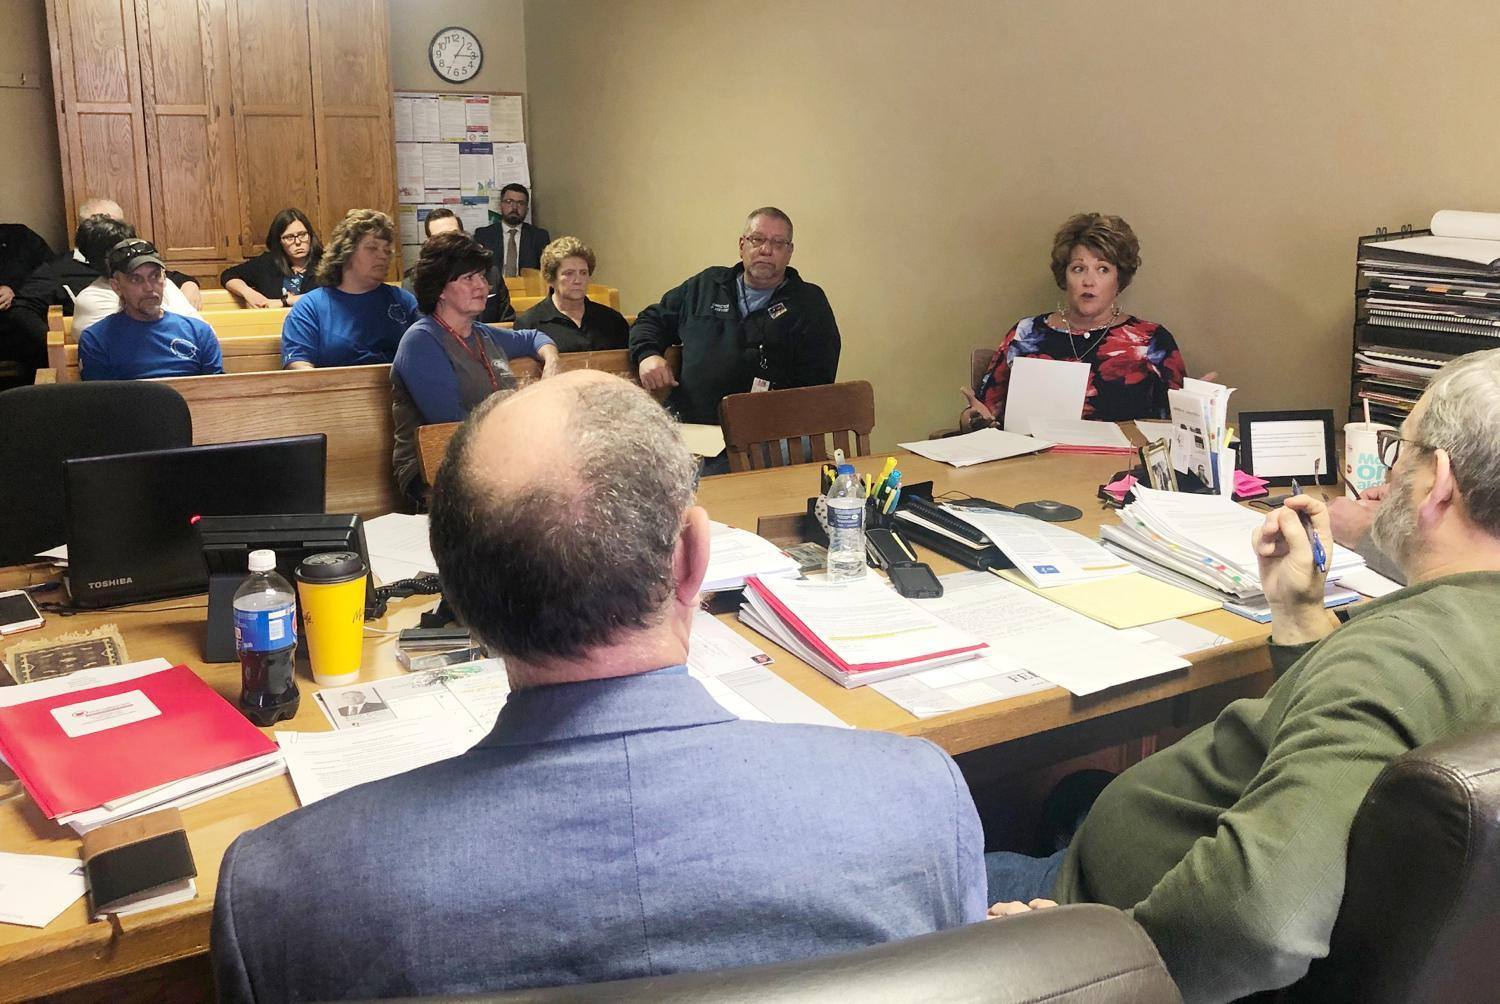 The Monroe County Commissioners listen to concerns from county office holders and department representatives during their regular meeting Monday, March 16. The commissioners declared a Public Health Emergency and voted to close the Monroe County Courthouse to the public during the emergency.